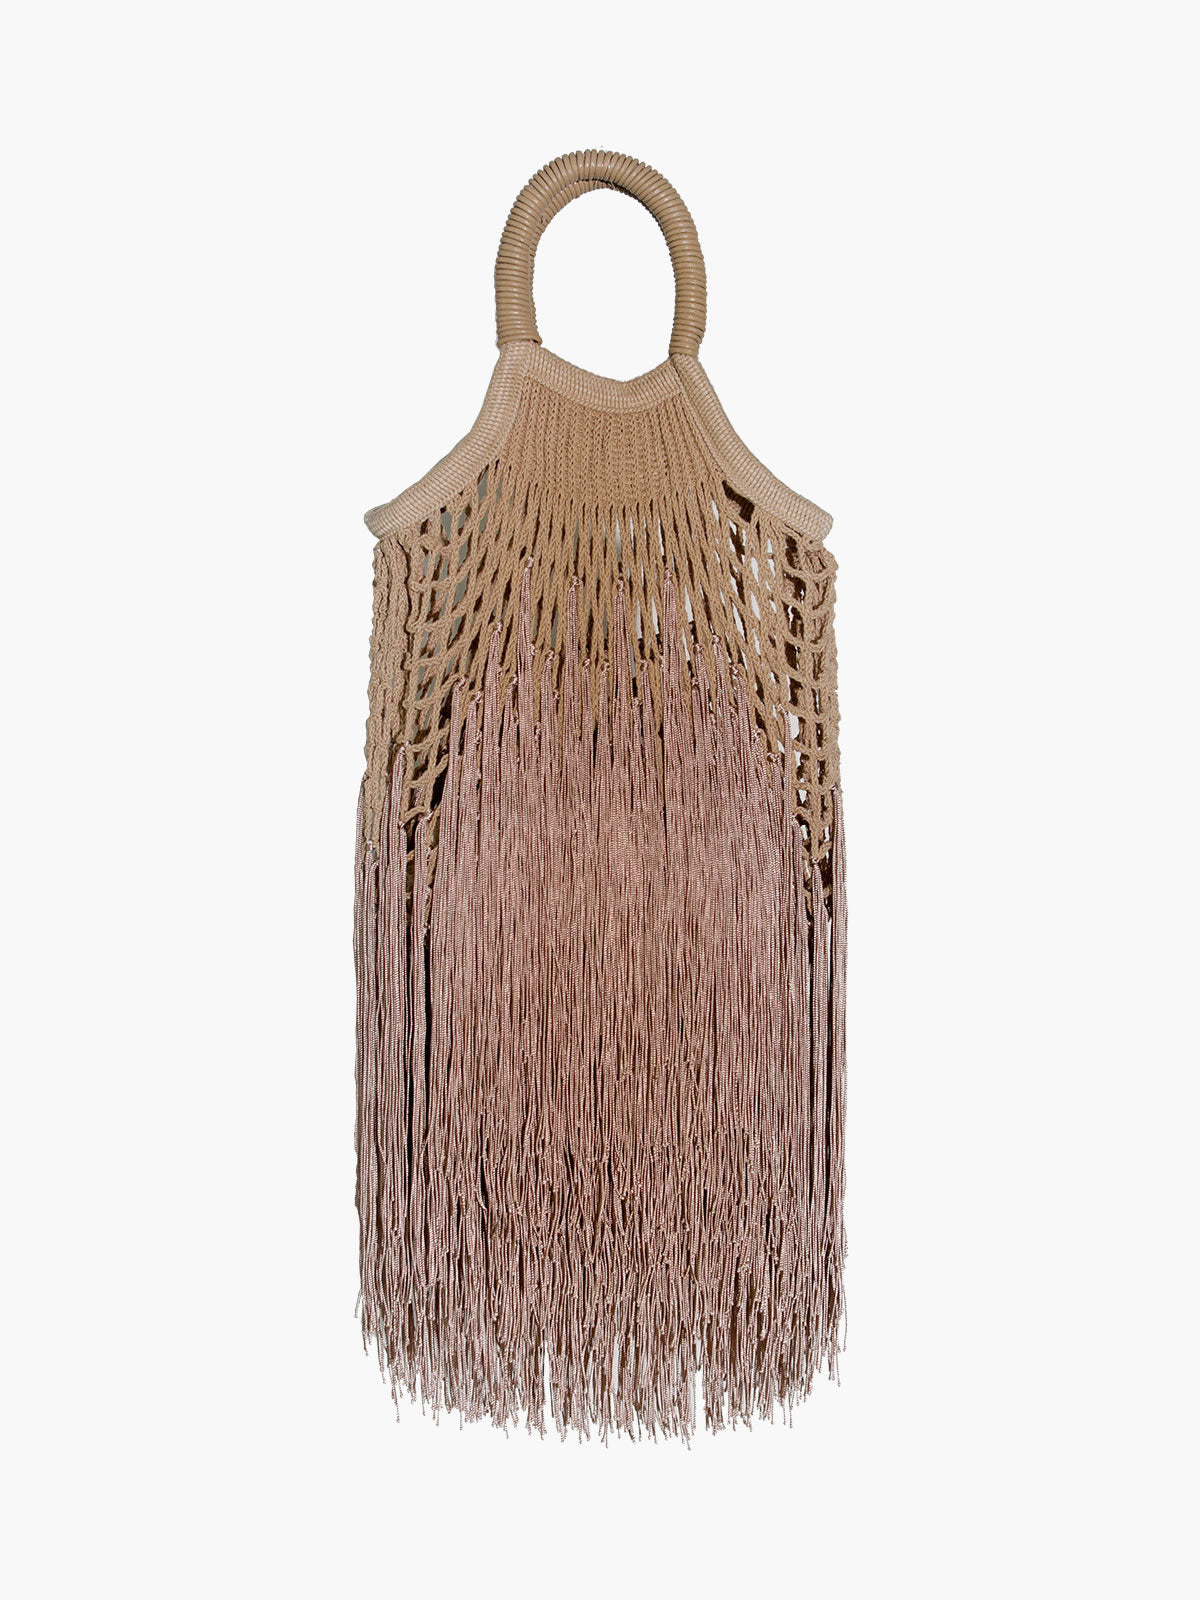 Mini Fringe Bag | Caramel Mini Fringe Bag | Caramel